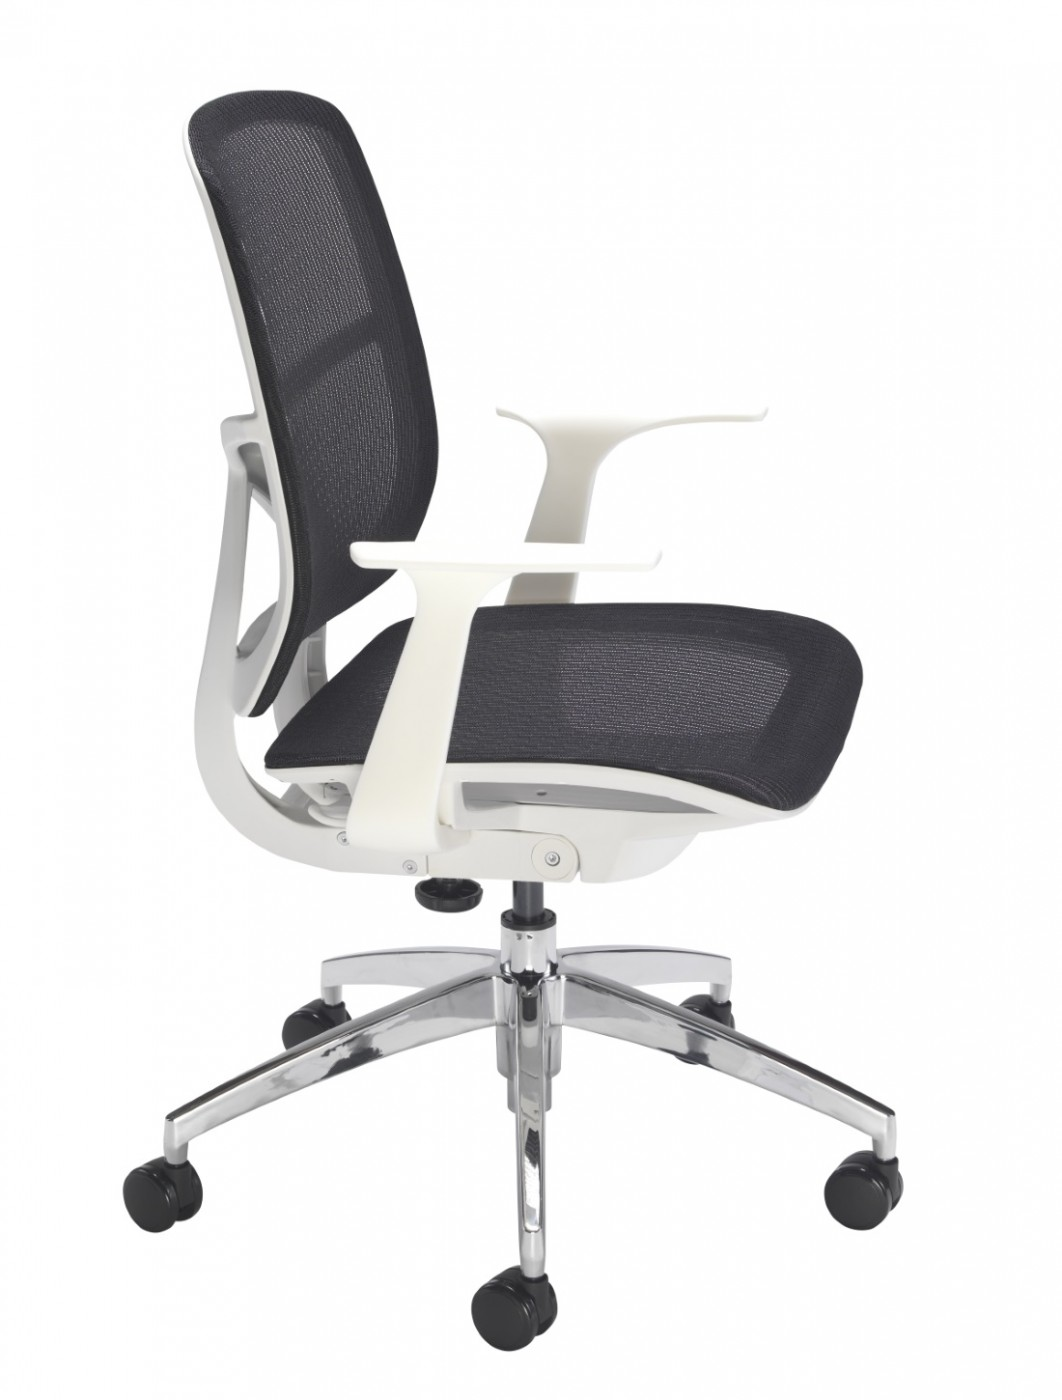 Office Chairs - TC Zico Mesh Office Chair CH0799 ETC042